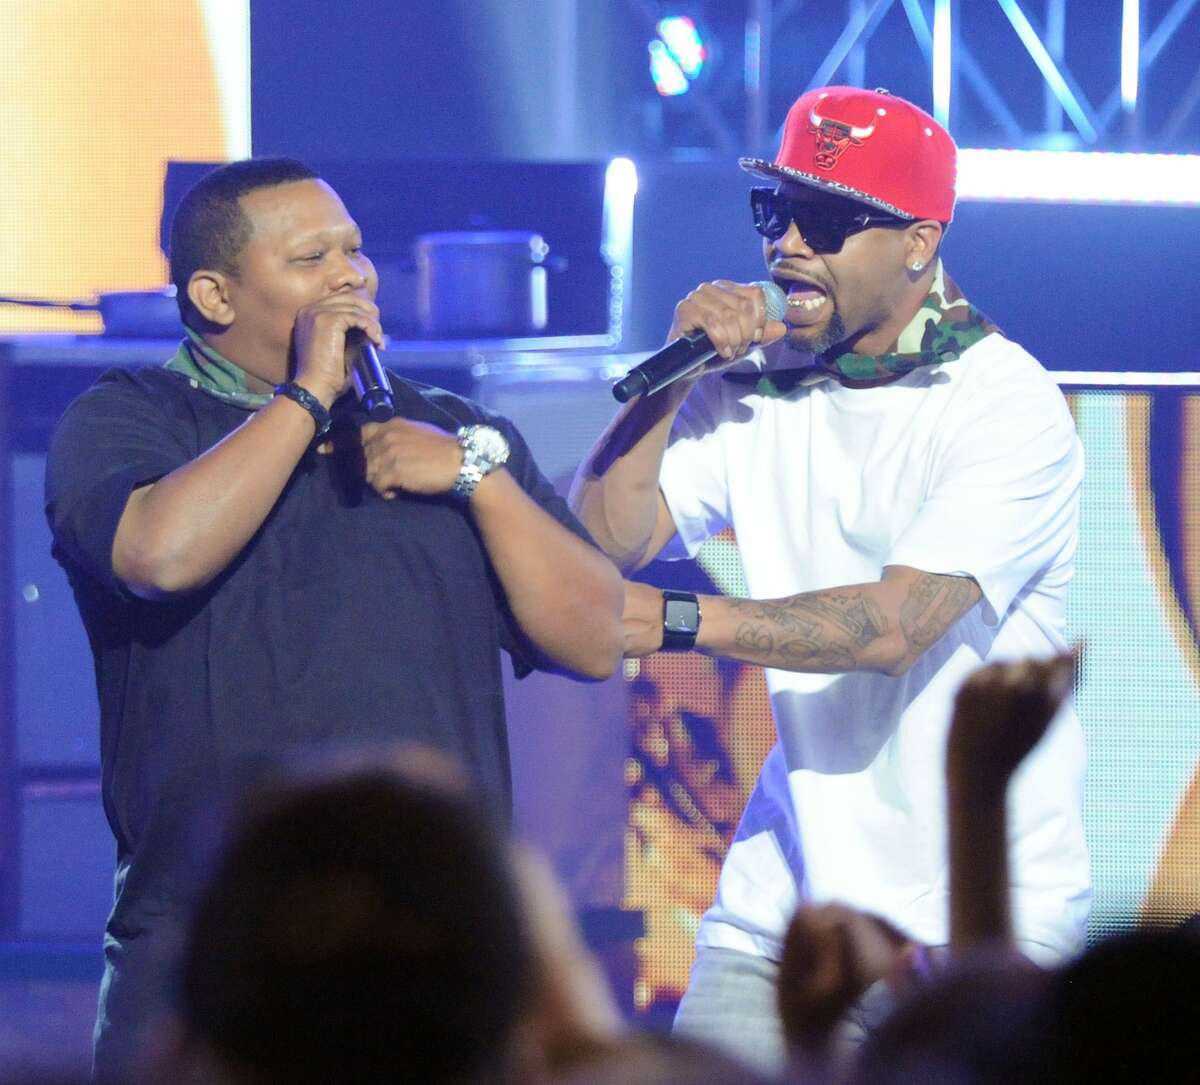 """Mannie Fresh and Juvenile join forces for """"Vax That Thang Up."""" (Photo by Chris McKay/WireImage)"""